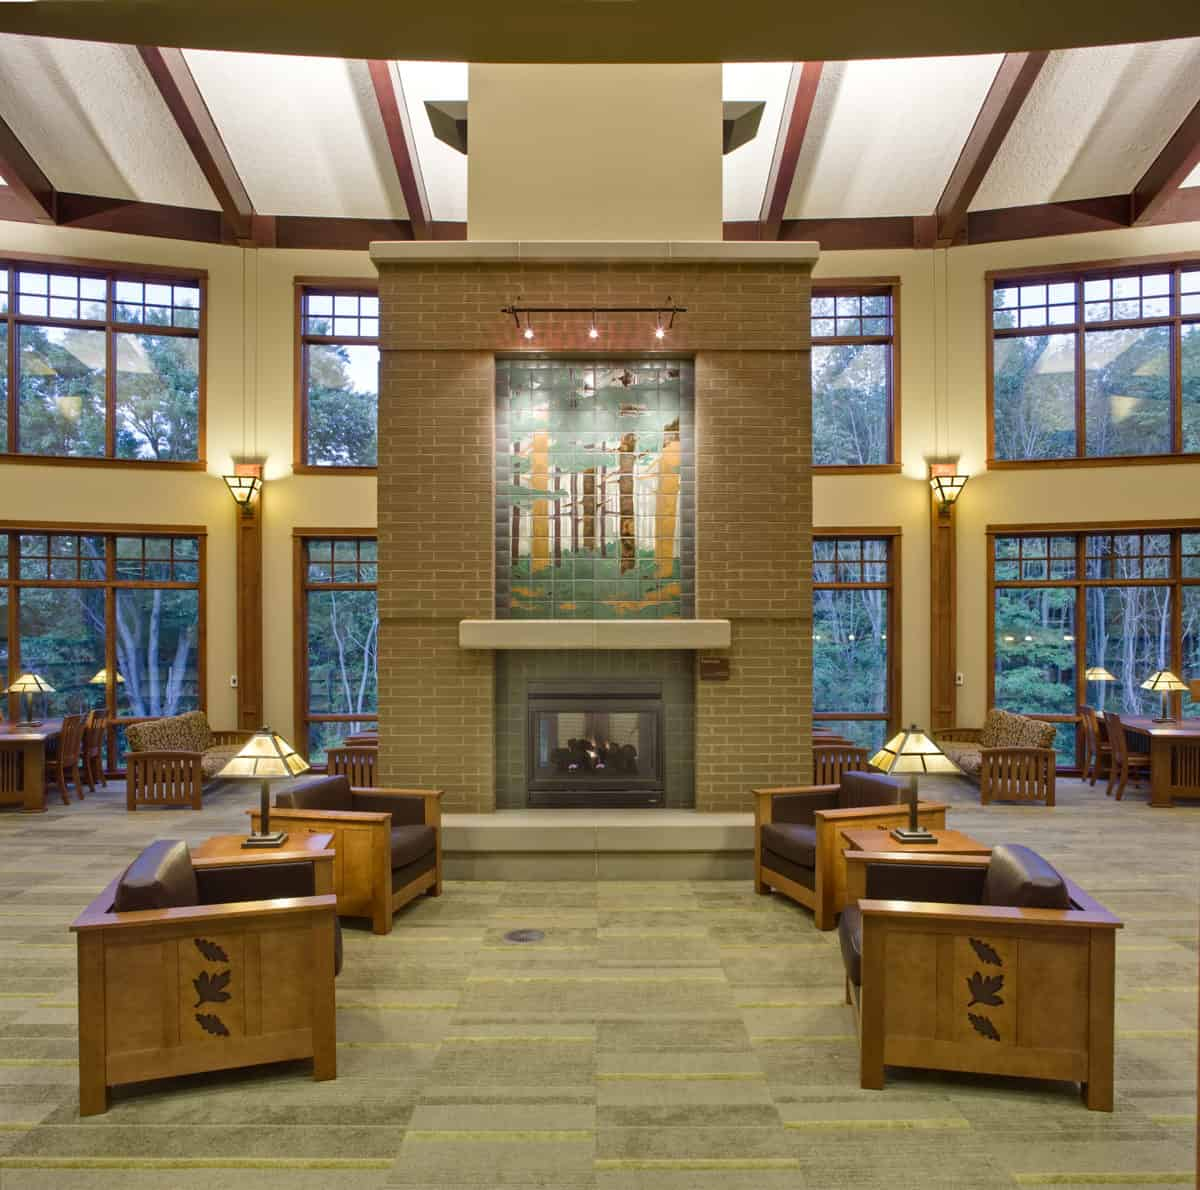 Delta Township District Library